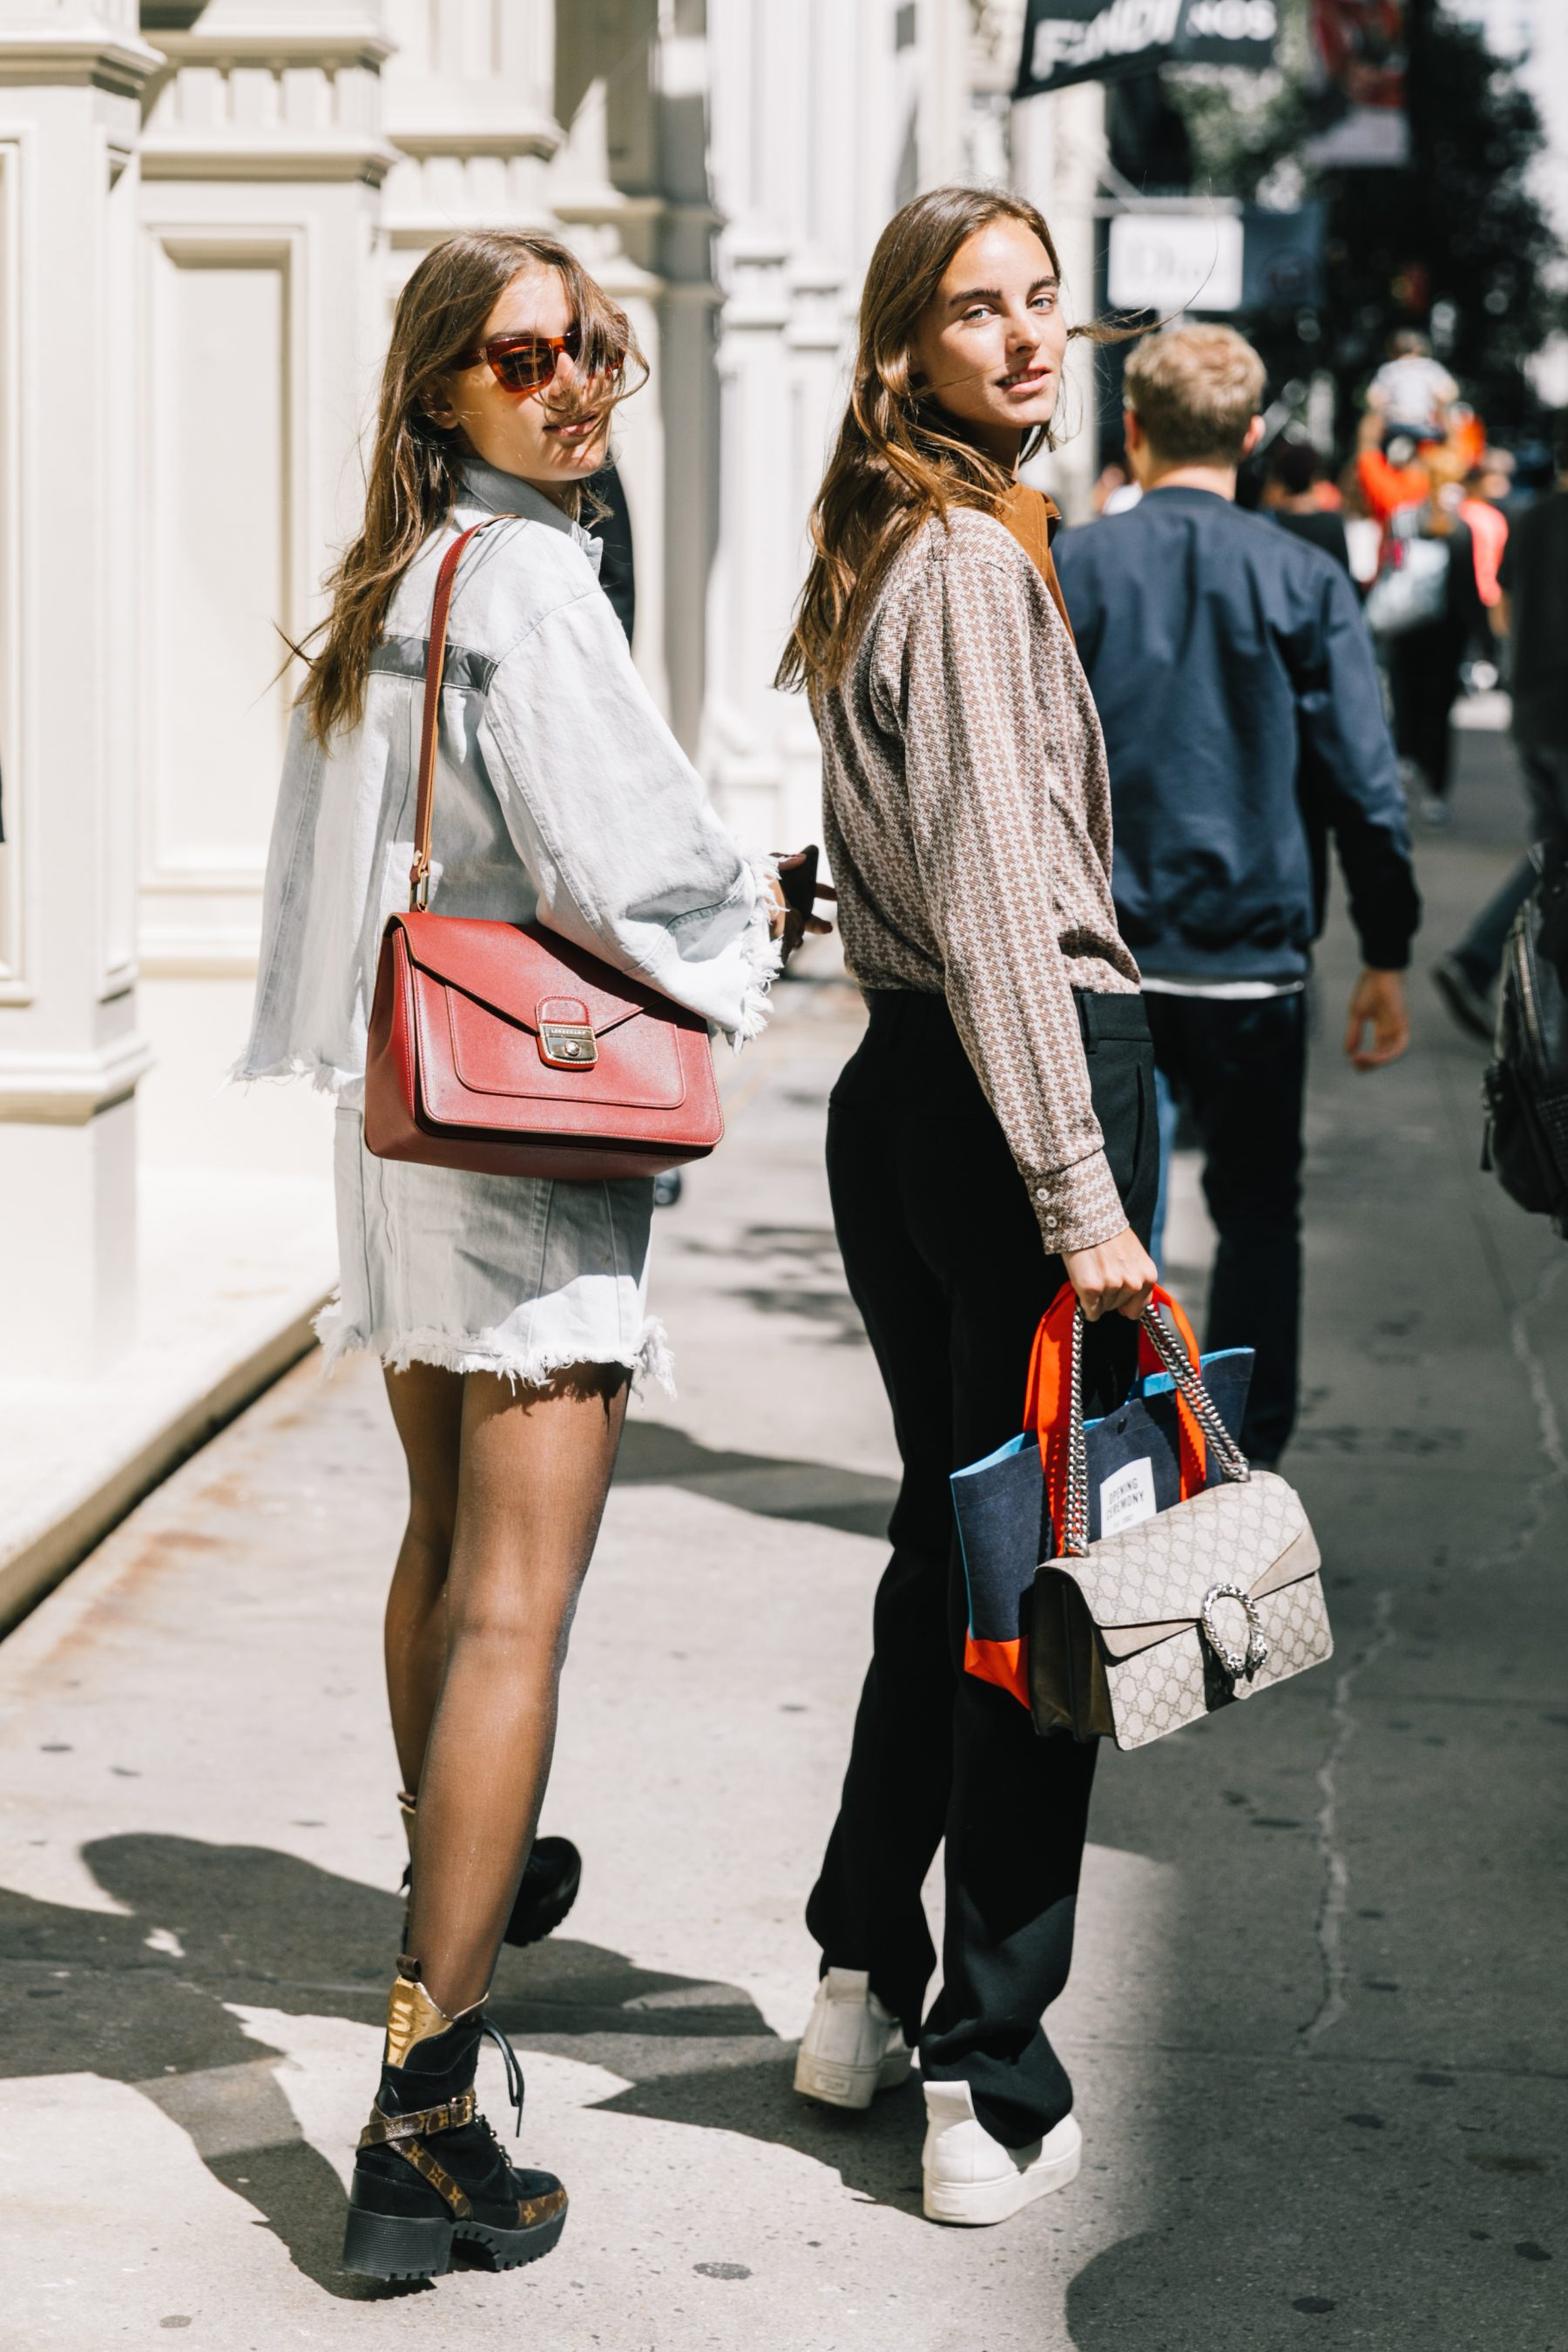 Street Style At London Fashion Week With Anouk: NYFW SS18 Street Style I